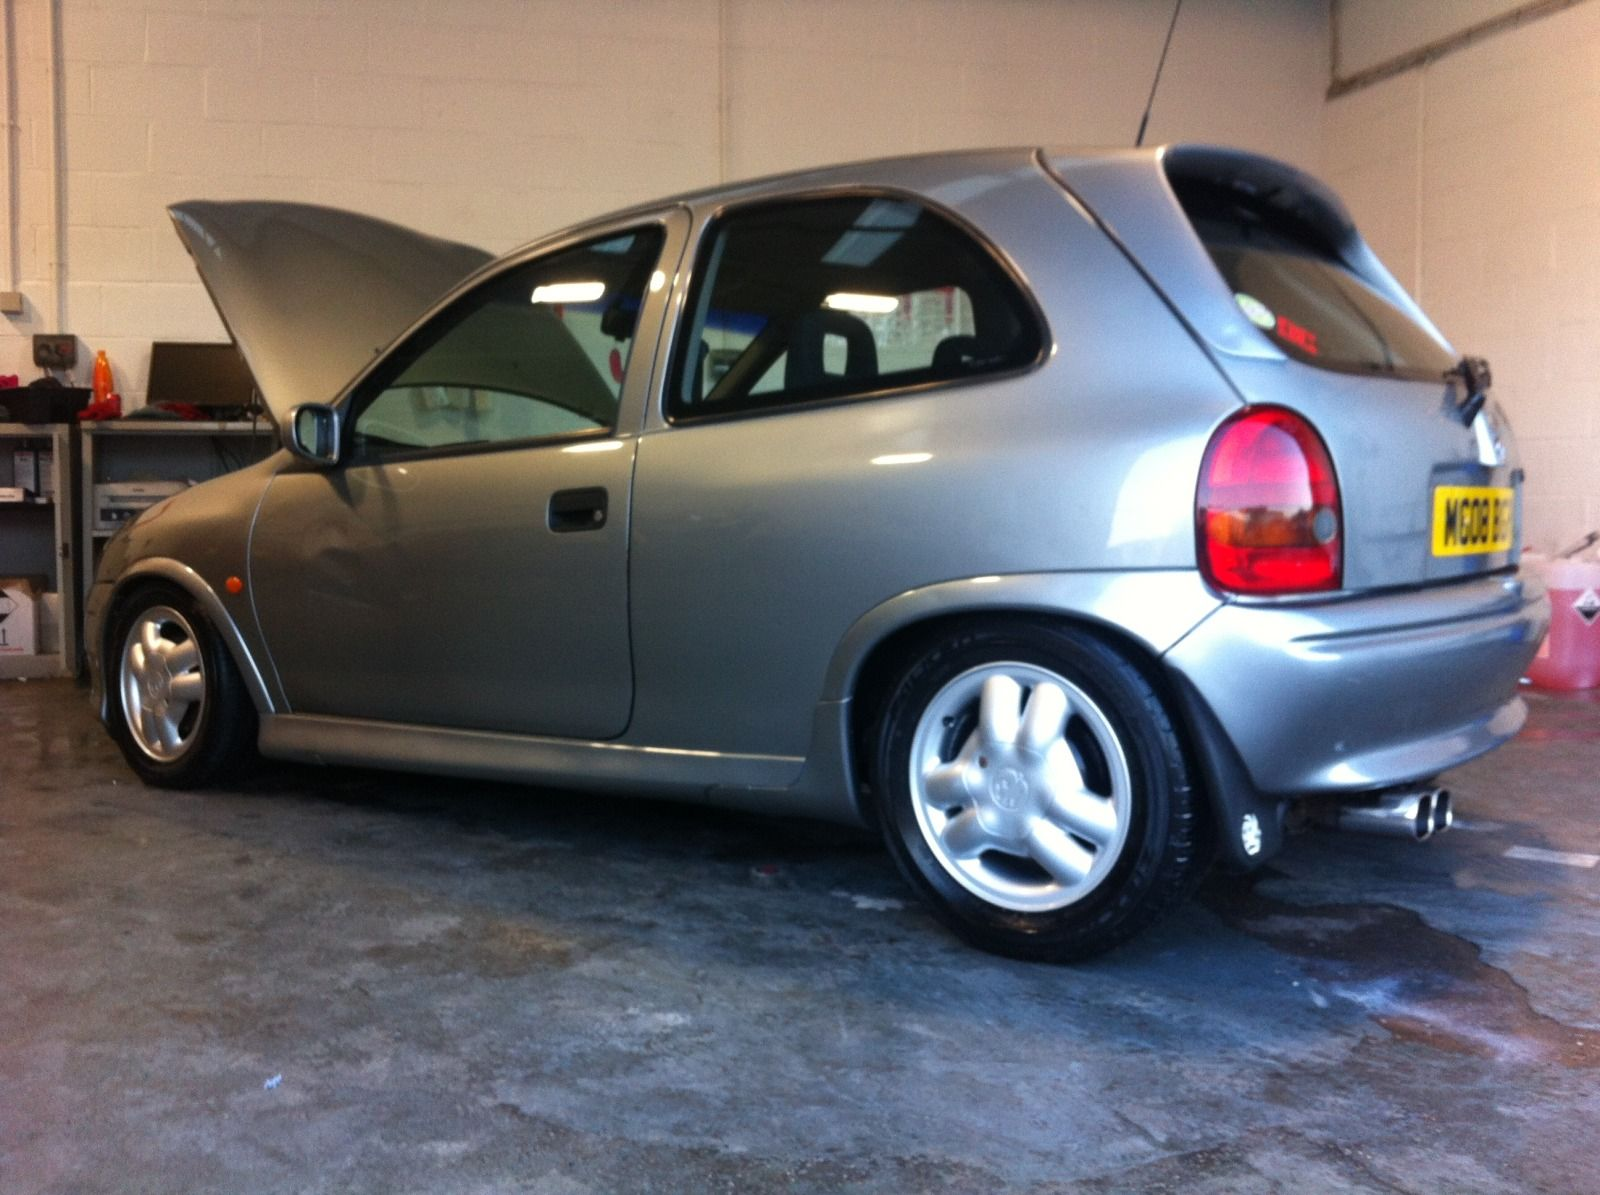 vauxhall corsa gsi smoke grey low miles reduced to 1300. Black Bedroom Furniture Sets. Home Design Ideas